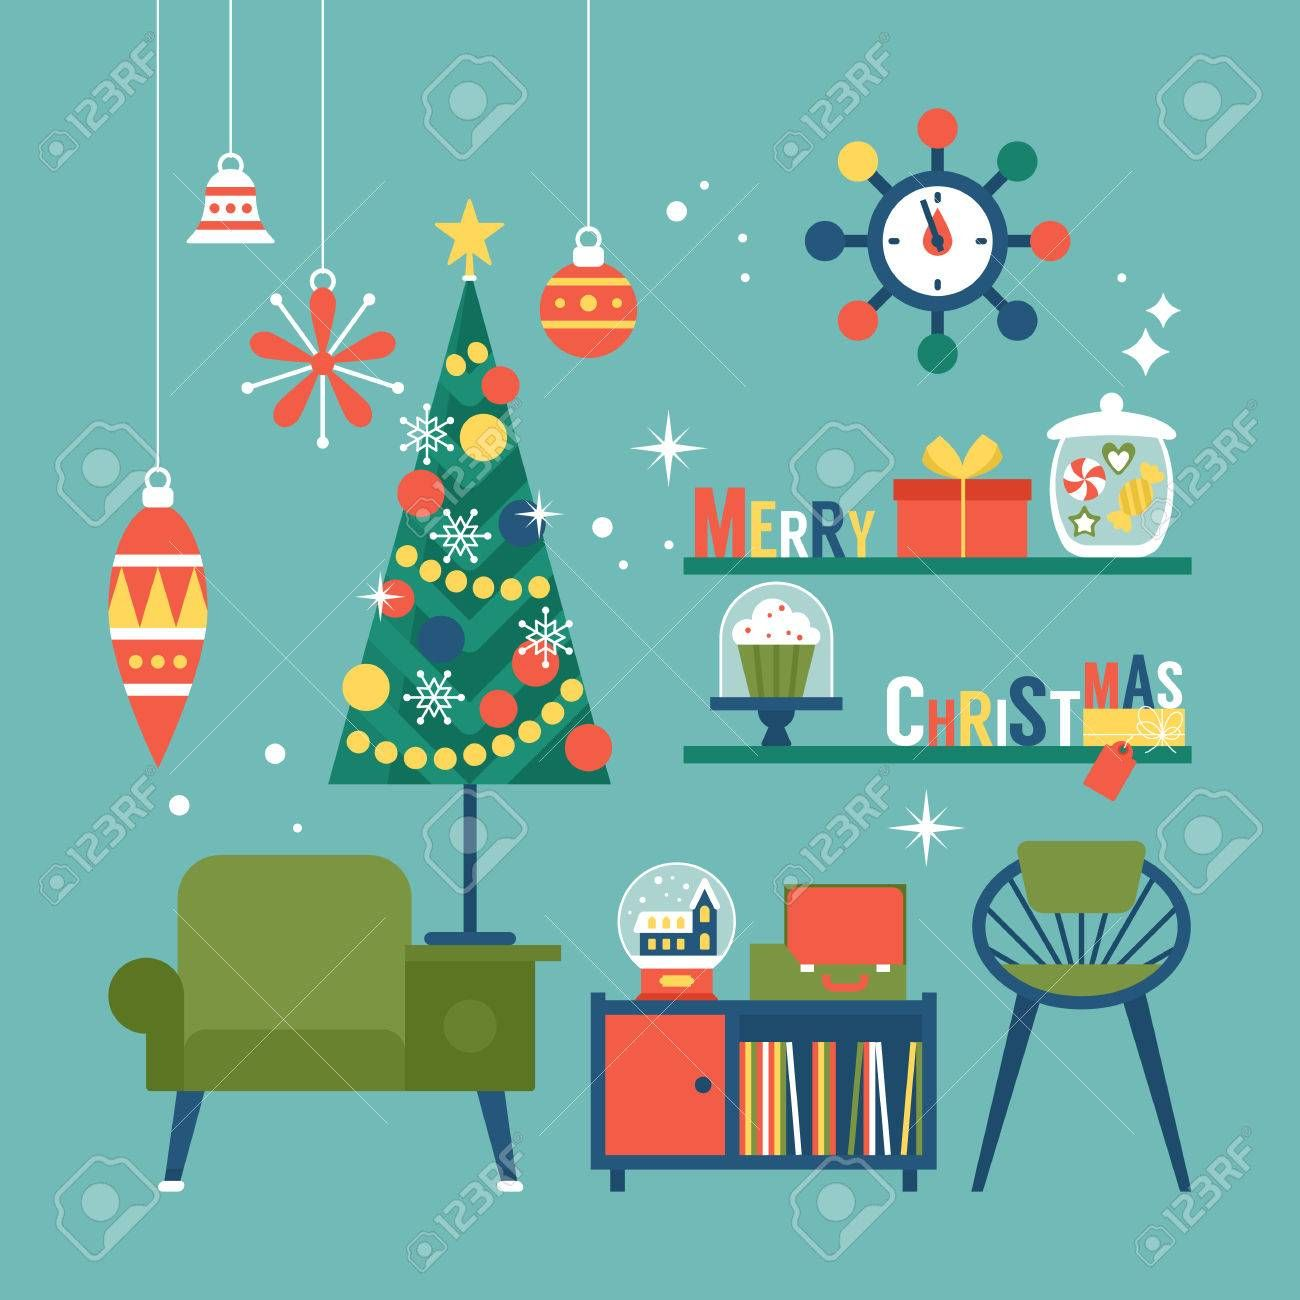 Mid century modern christmas clipart png black and white library Stock Vector | Mid-century Palooza | Christmas illustration ... png black and white library